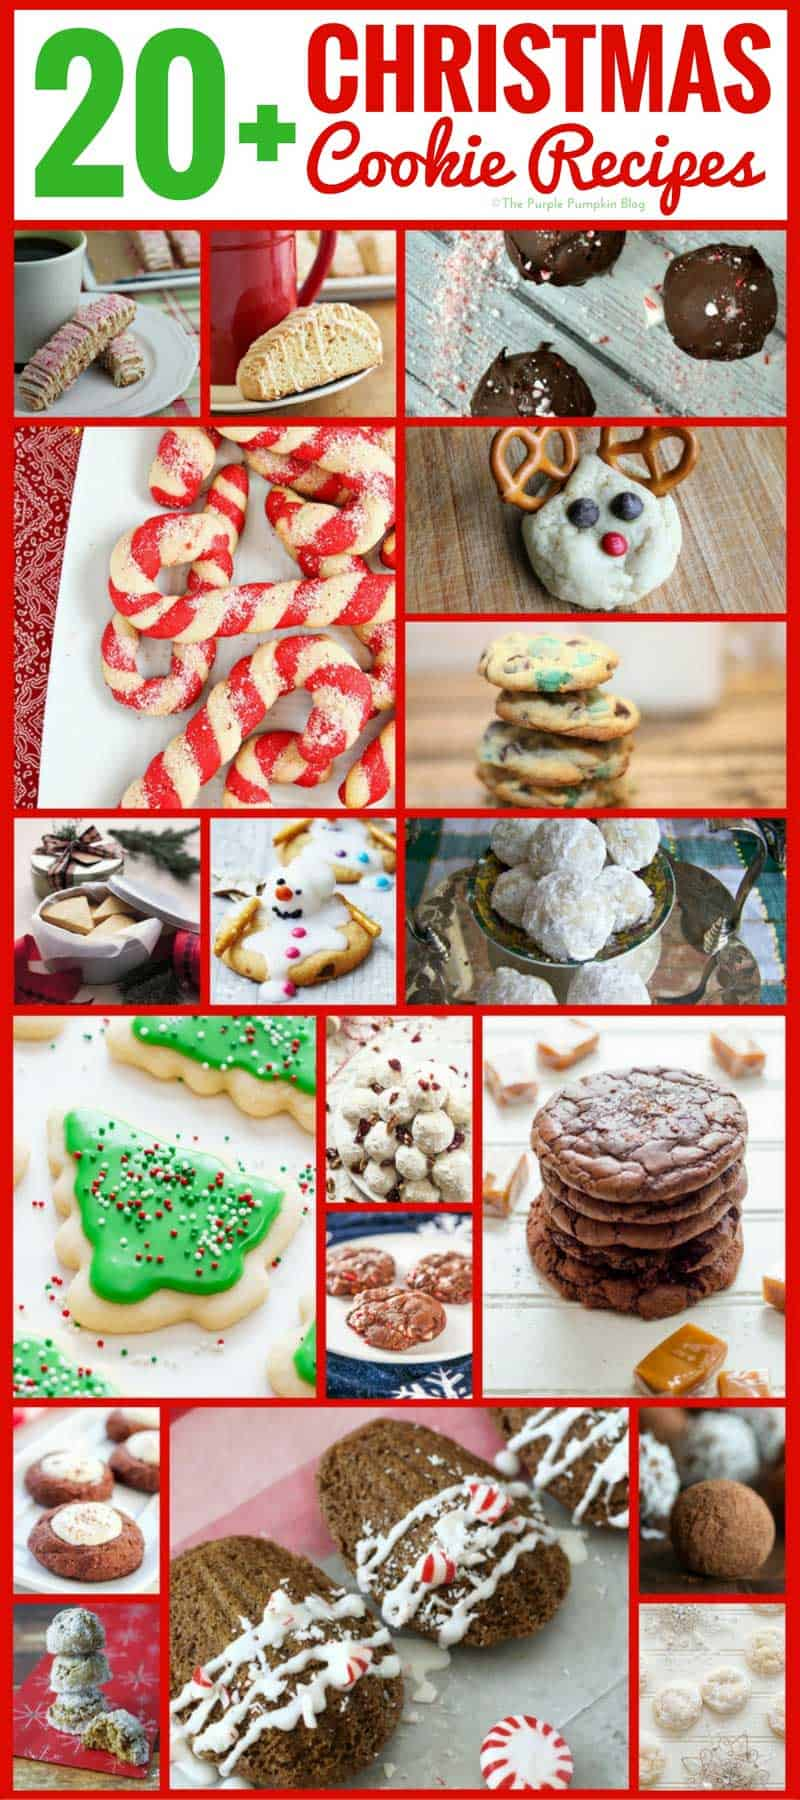 Bbc food recipes christmas cookies sparkling vanilla christmas bbc food recipes christmas cookies forumfinder Choice Image